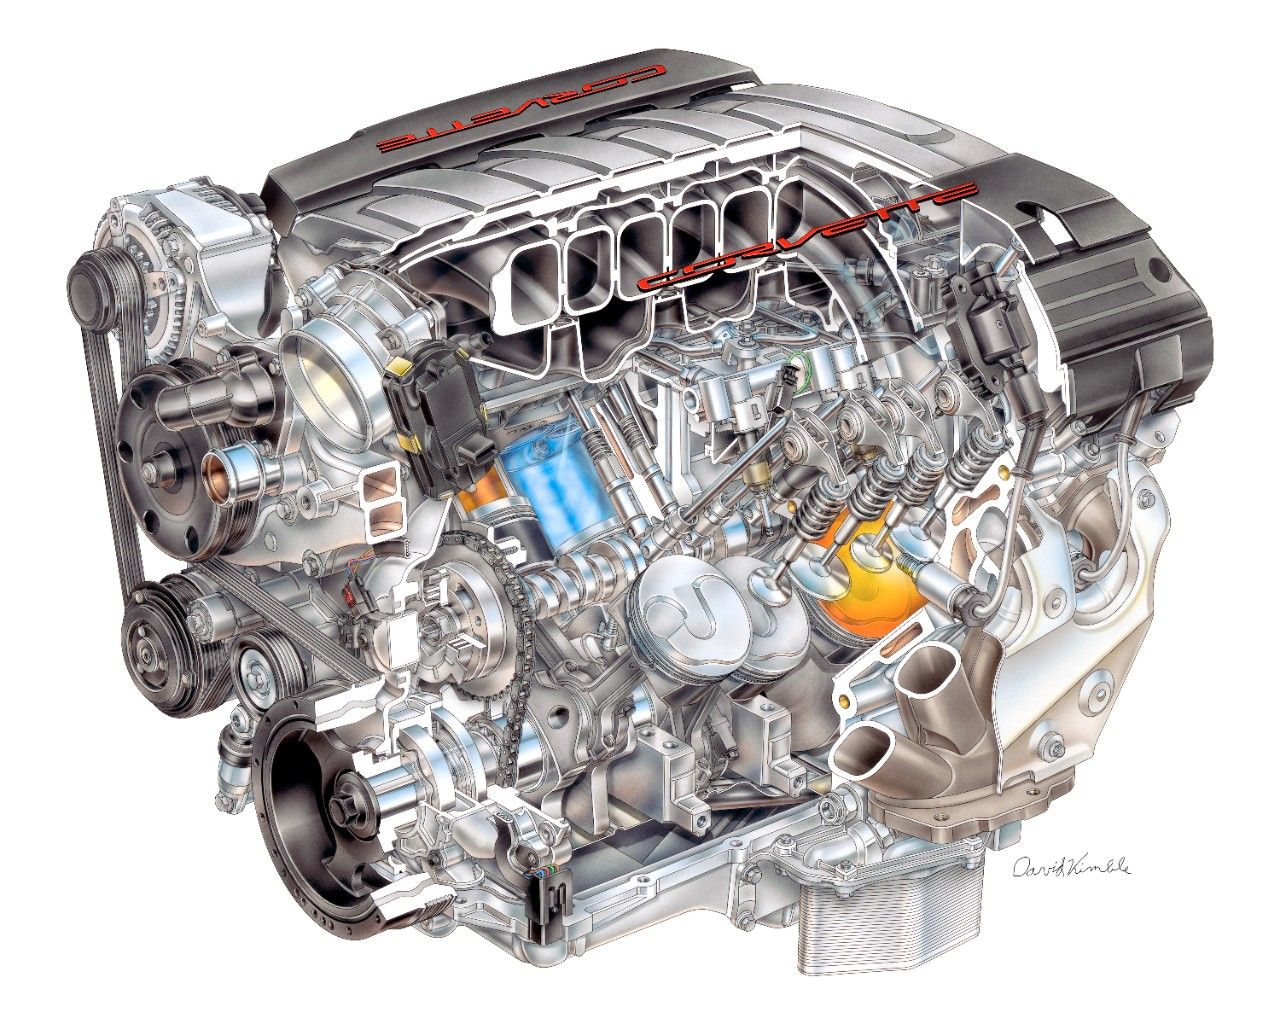 2010 Chrysler 3 8l Engine Diagram Guide And Troubleshooting Of 8 Coolant System Fuel Rail Get Free Image Dodge Caravan Cooling Gm